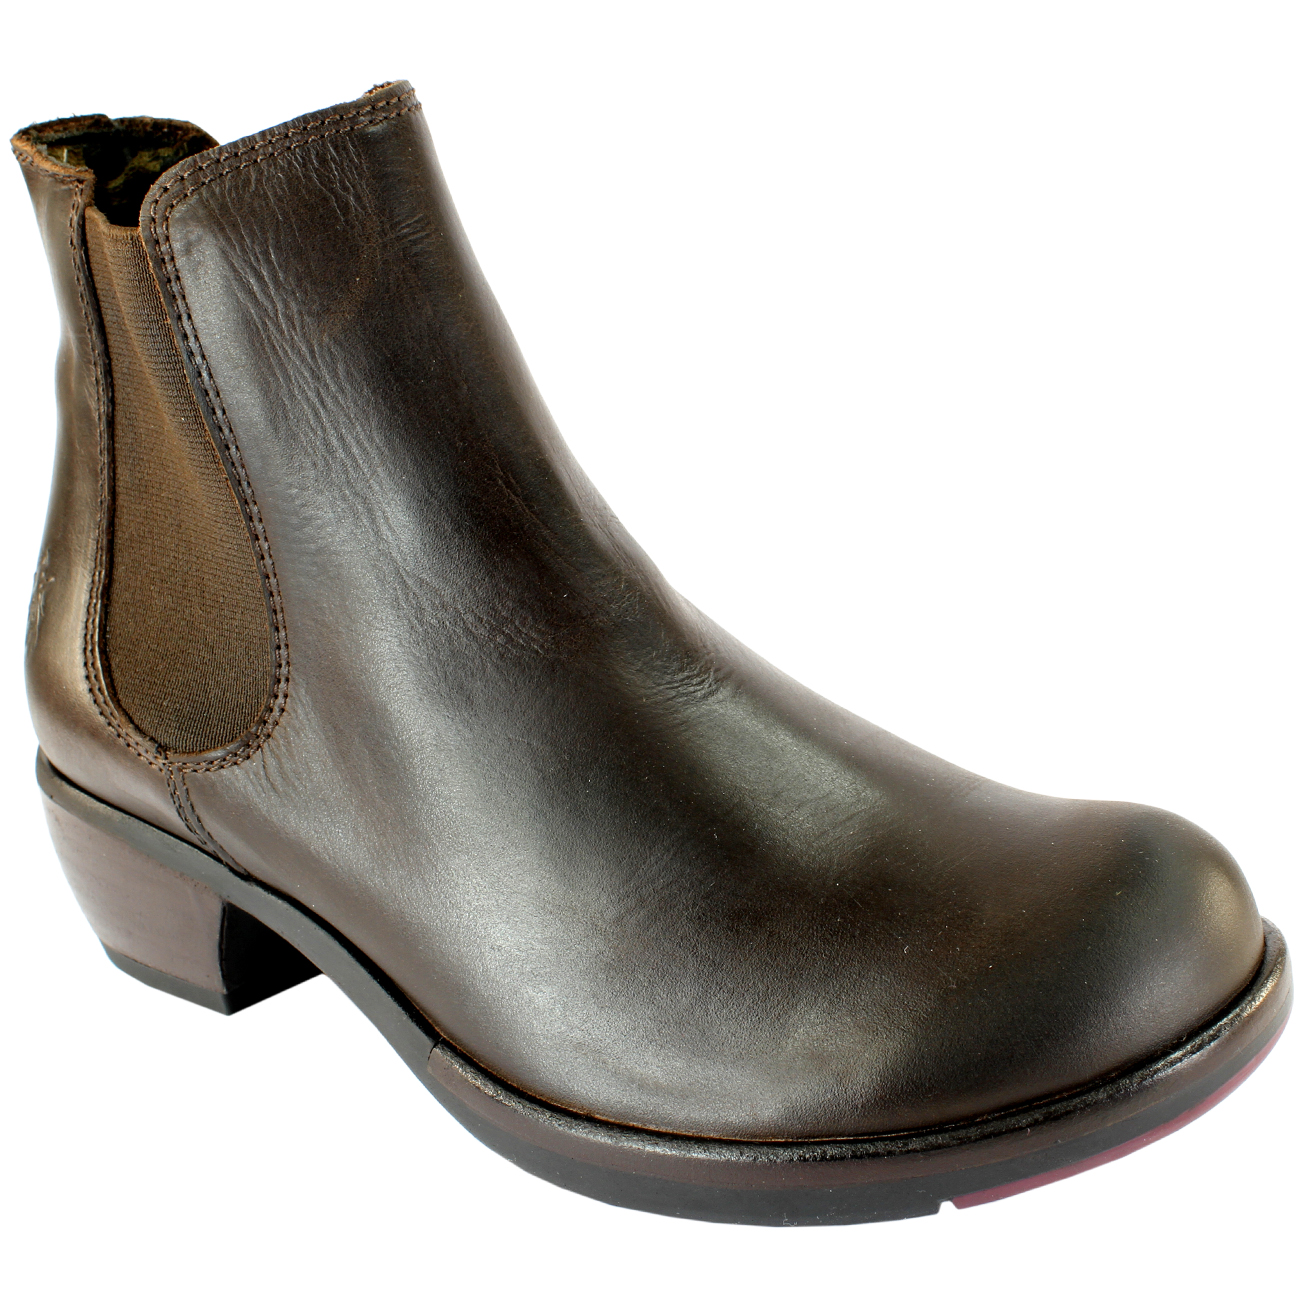 WOMENS FLY LONDON MAKE LOW HEEL ELASTICATED PULL ON CHELSEA BOOTS ...